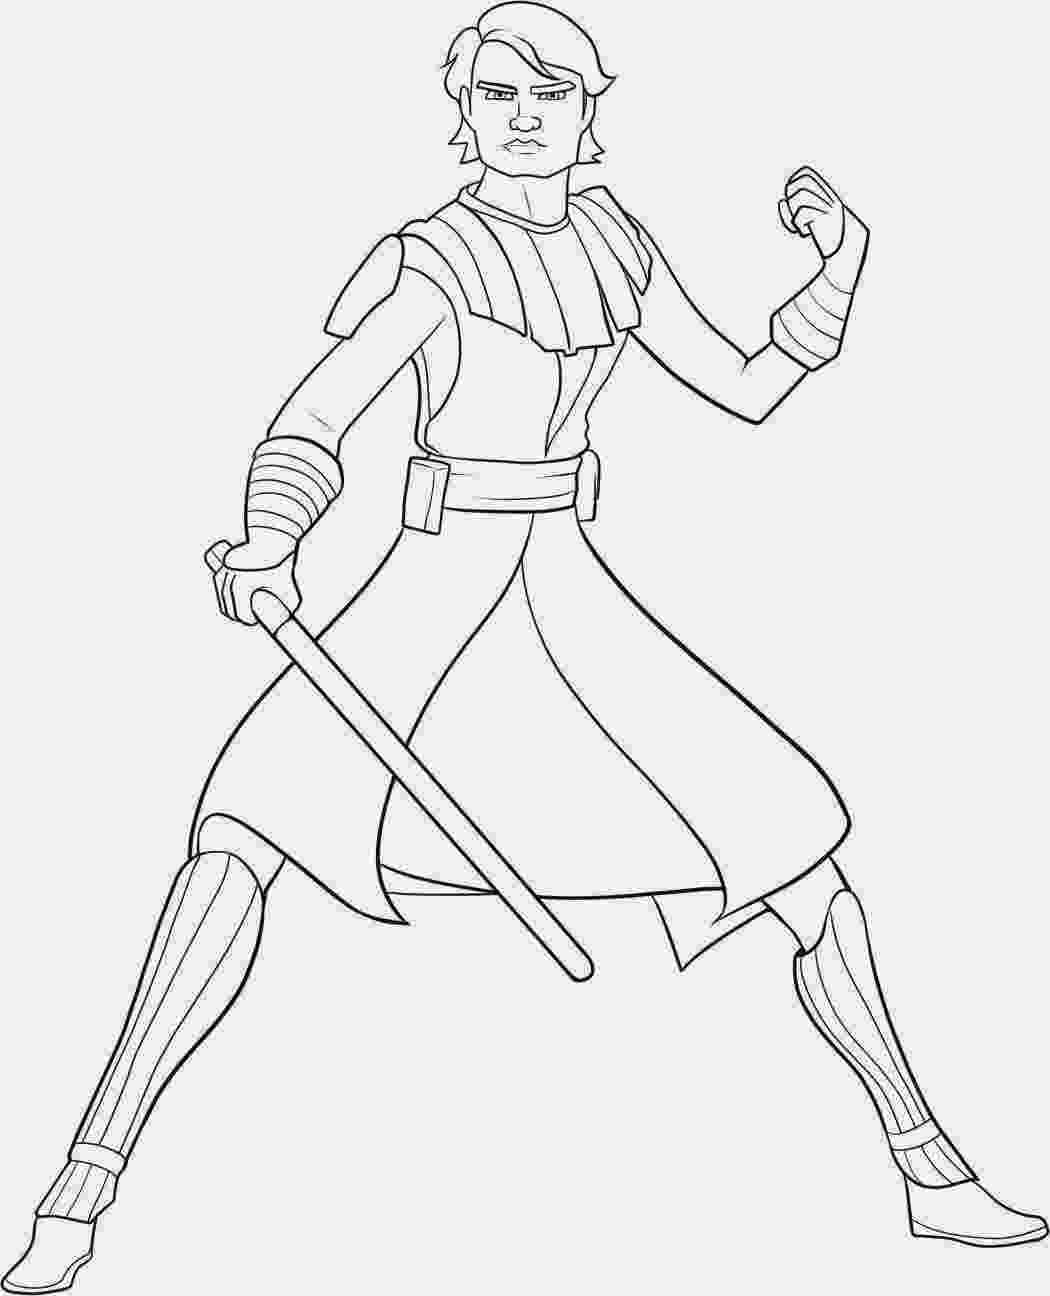 anakin skywalker coloring pages top 25 free printable star wars coloring pages online anakin pages skywalker coloring